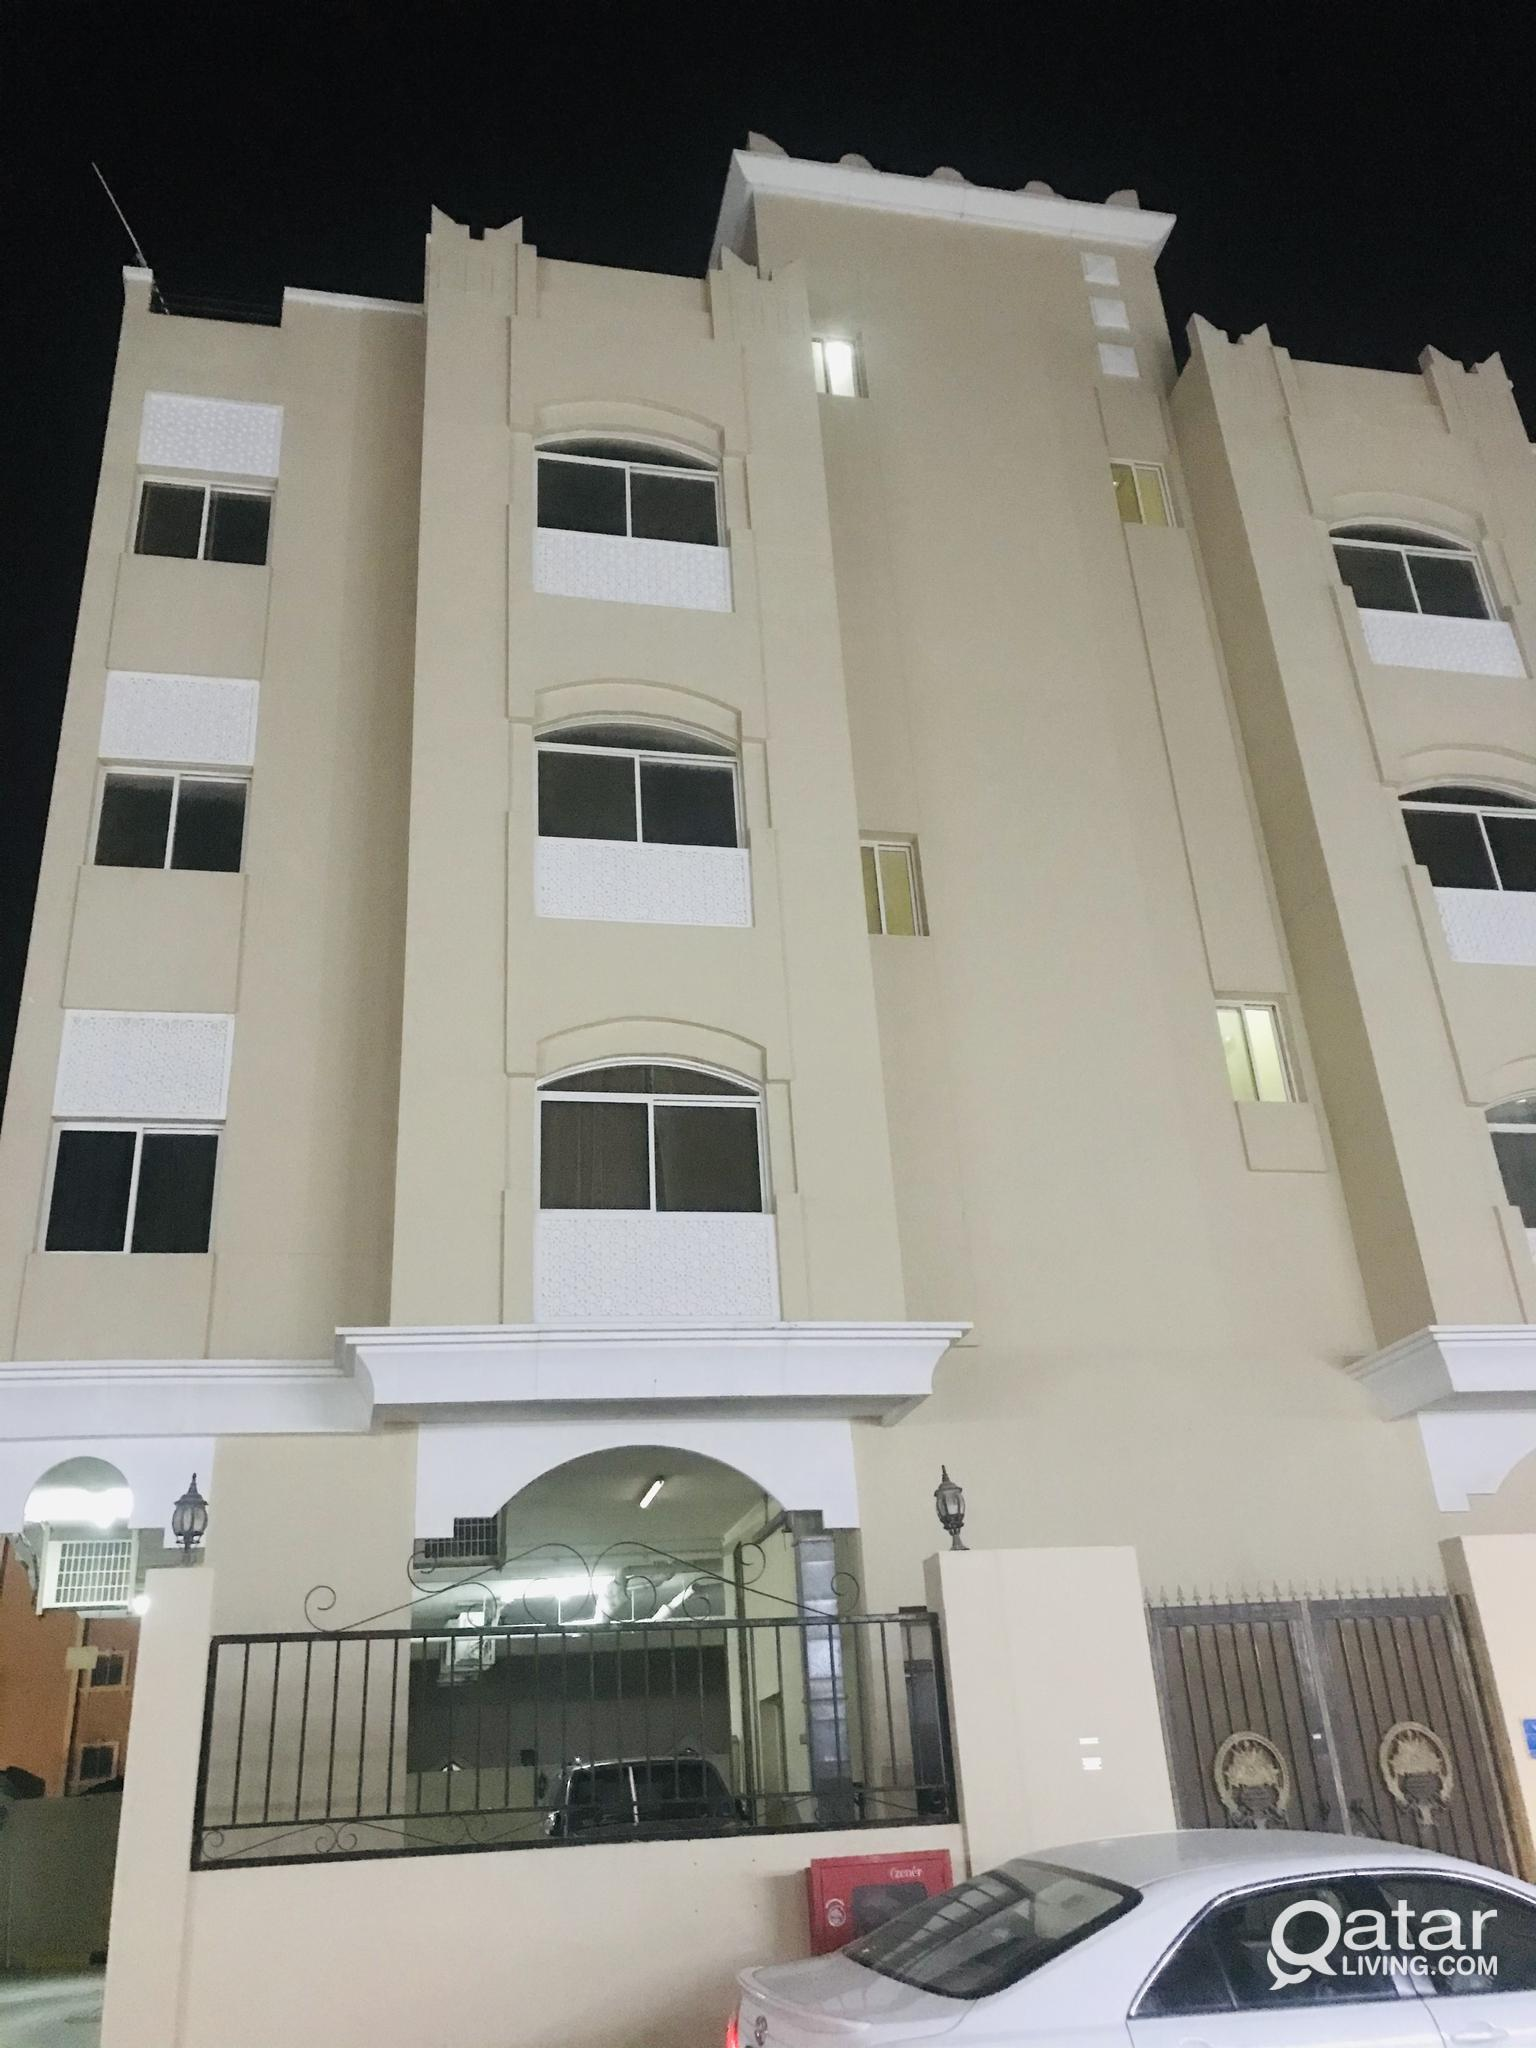 2 BEDROOM 2 BATHROOM AVAILABLE IN AL- WAKRA  QTEL